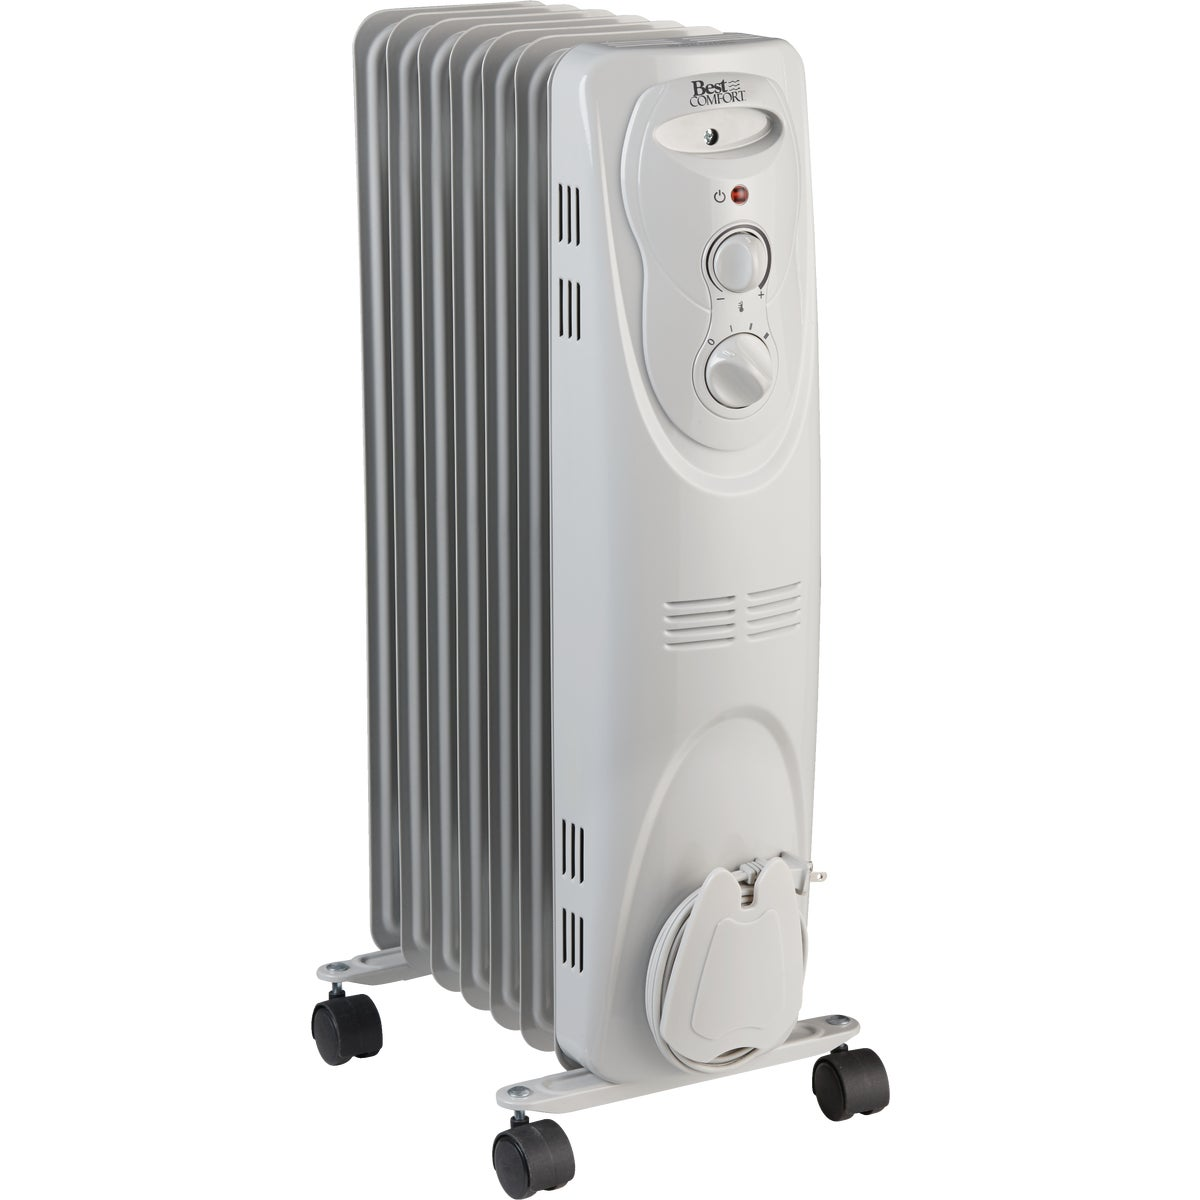 OIL FILD RADIATOR HEATER - EOF260 by World Mktg / Direct